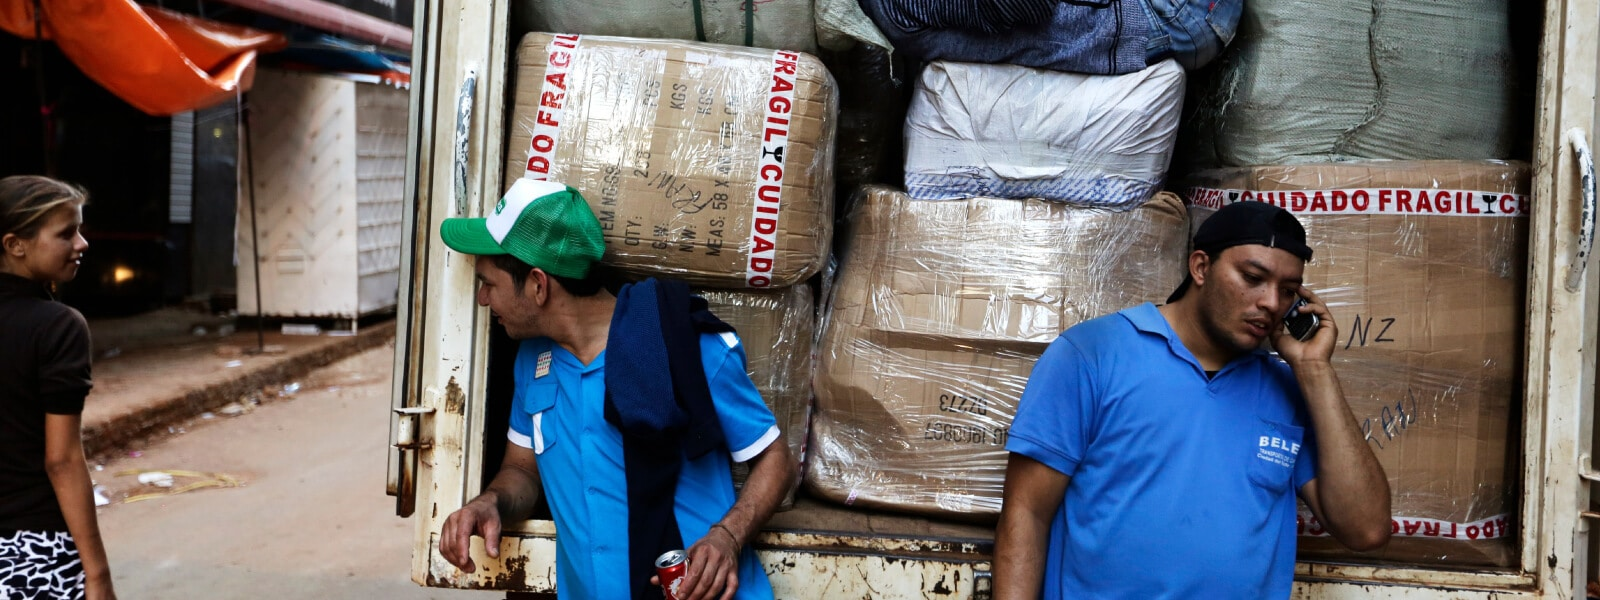 3.-Paraguay_Workers-loading-a-cargo-into-a-truck_AP_835805252595201_2015_Gamechangers.jpg